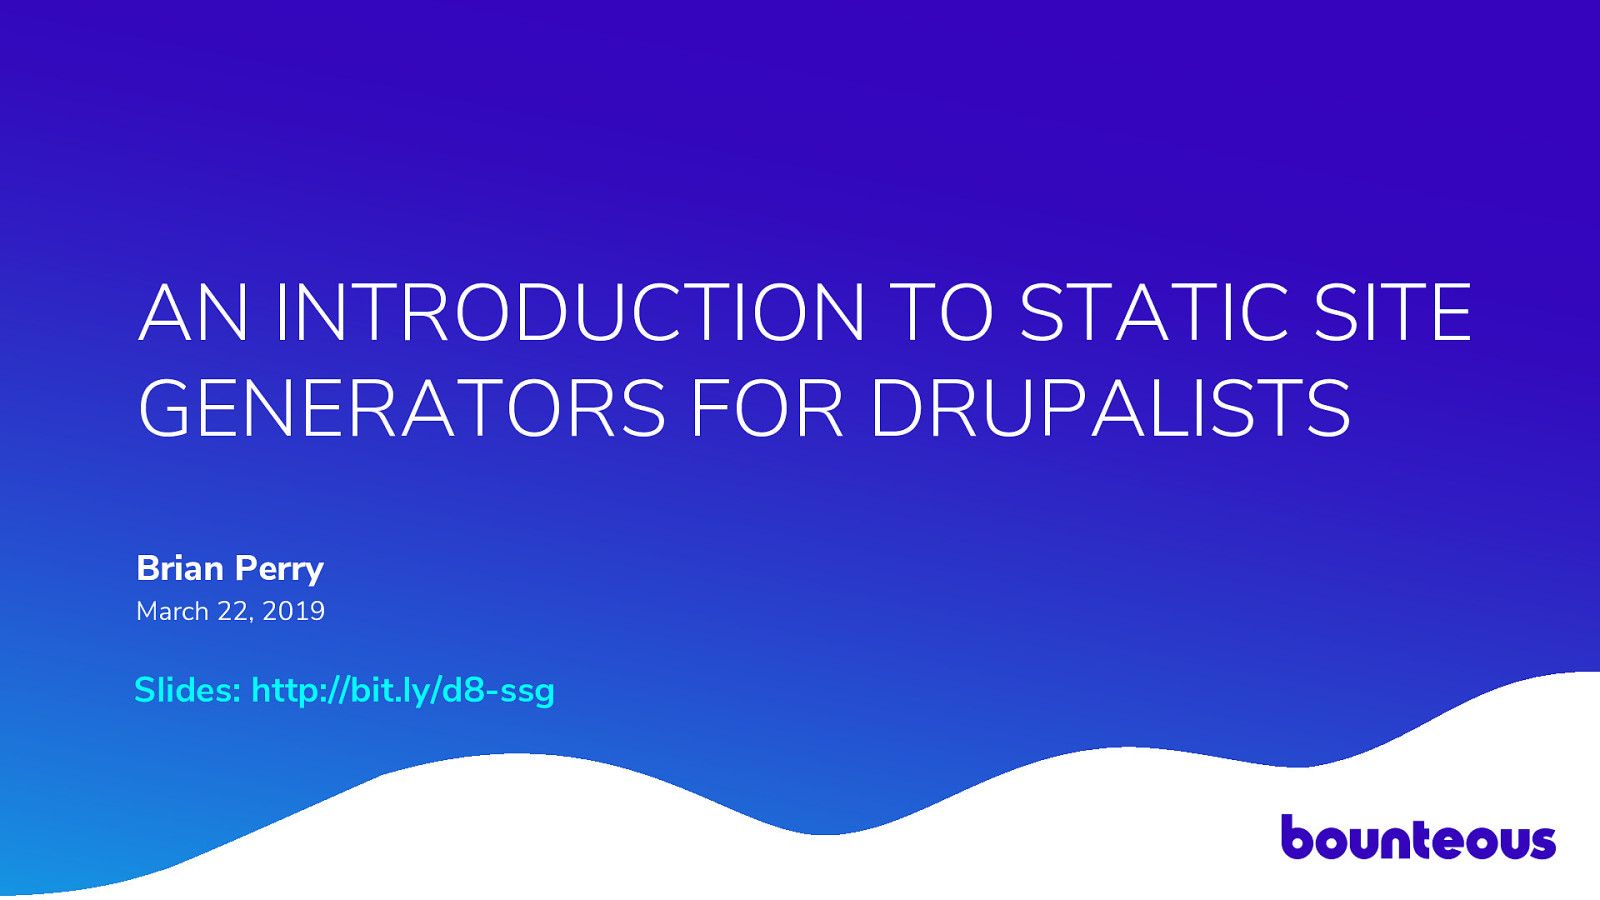 An Introduction to Static Site Generators for Drupalists